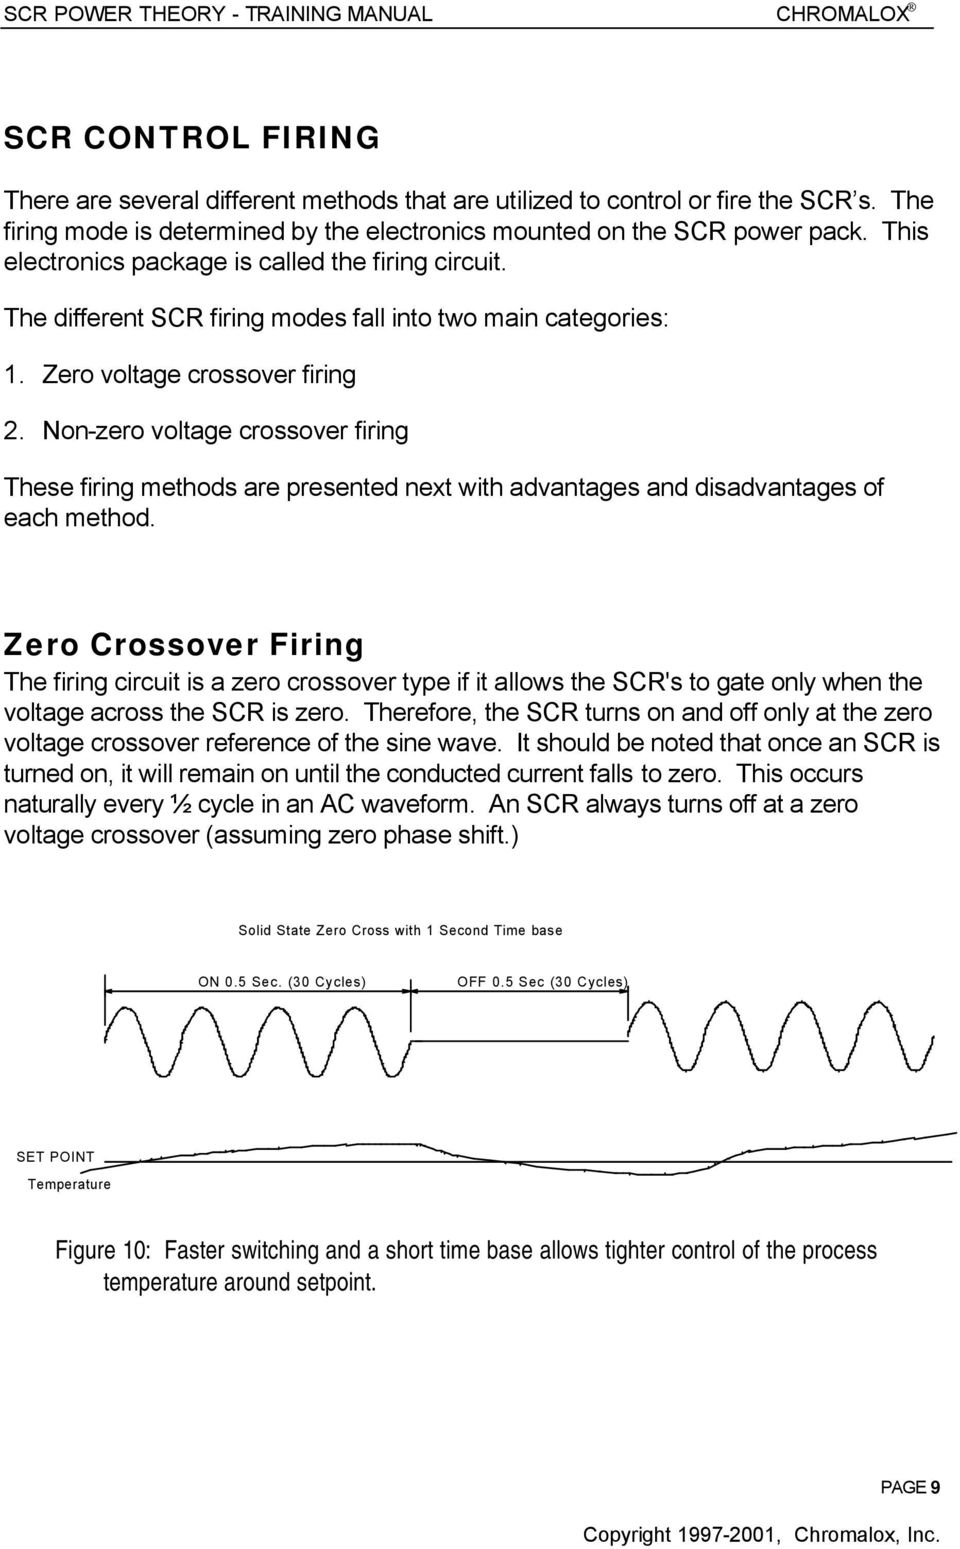 Scr Power Theory Training Manual Pdf Using An Allows The Use Of Lowvoltage Electronics To Control Zero Voltage Crossover Firing 2 Non These Methods Are